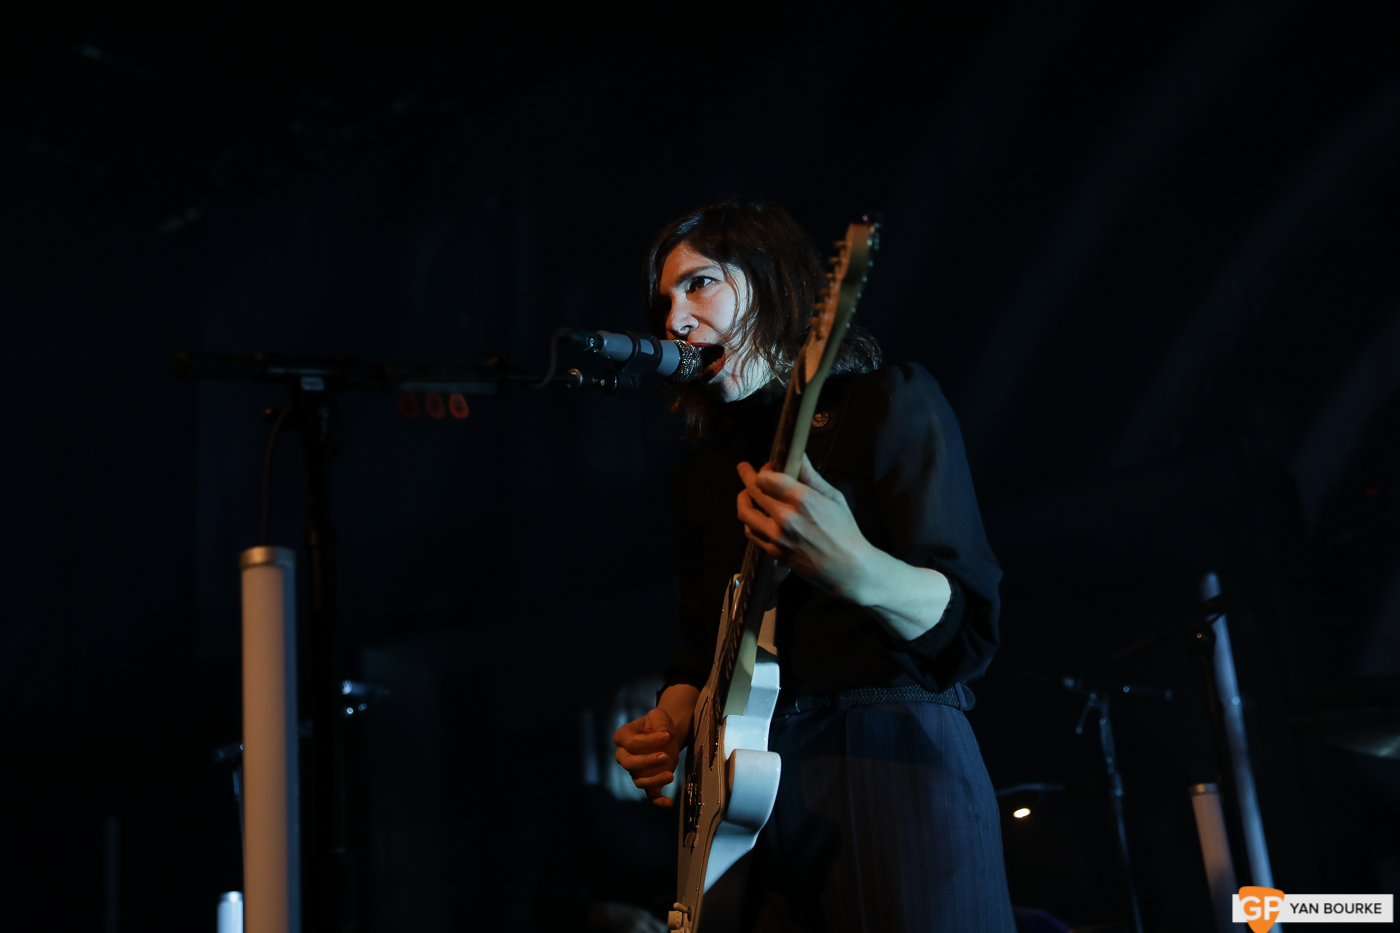 Sleater-Kinney at Vicar Street on 1 March 2020 by Yan Bourke